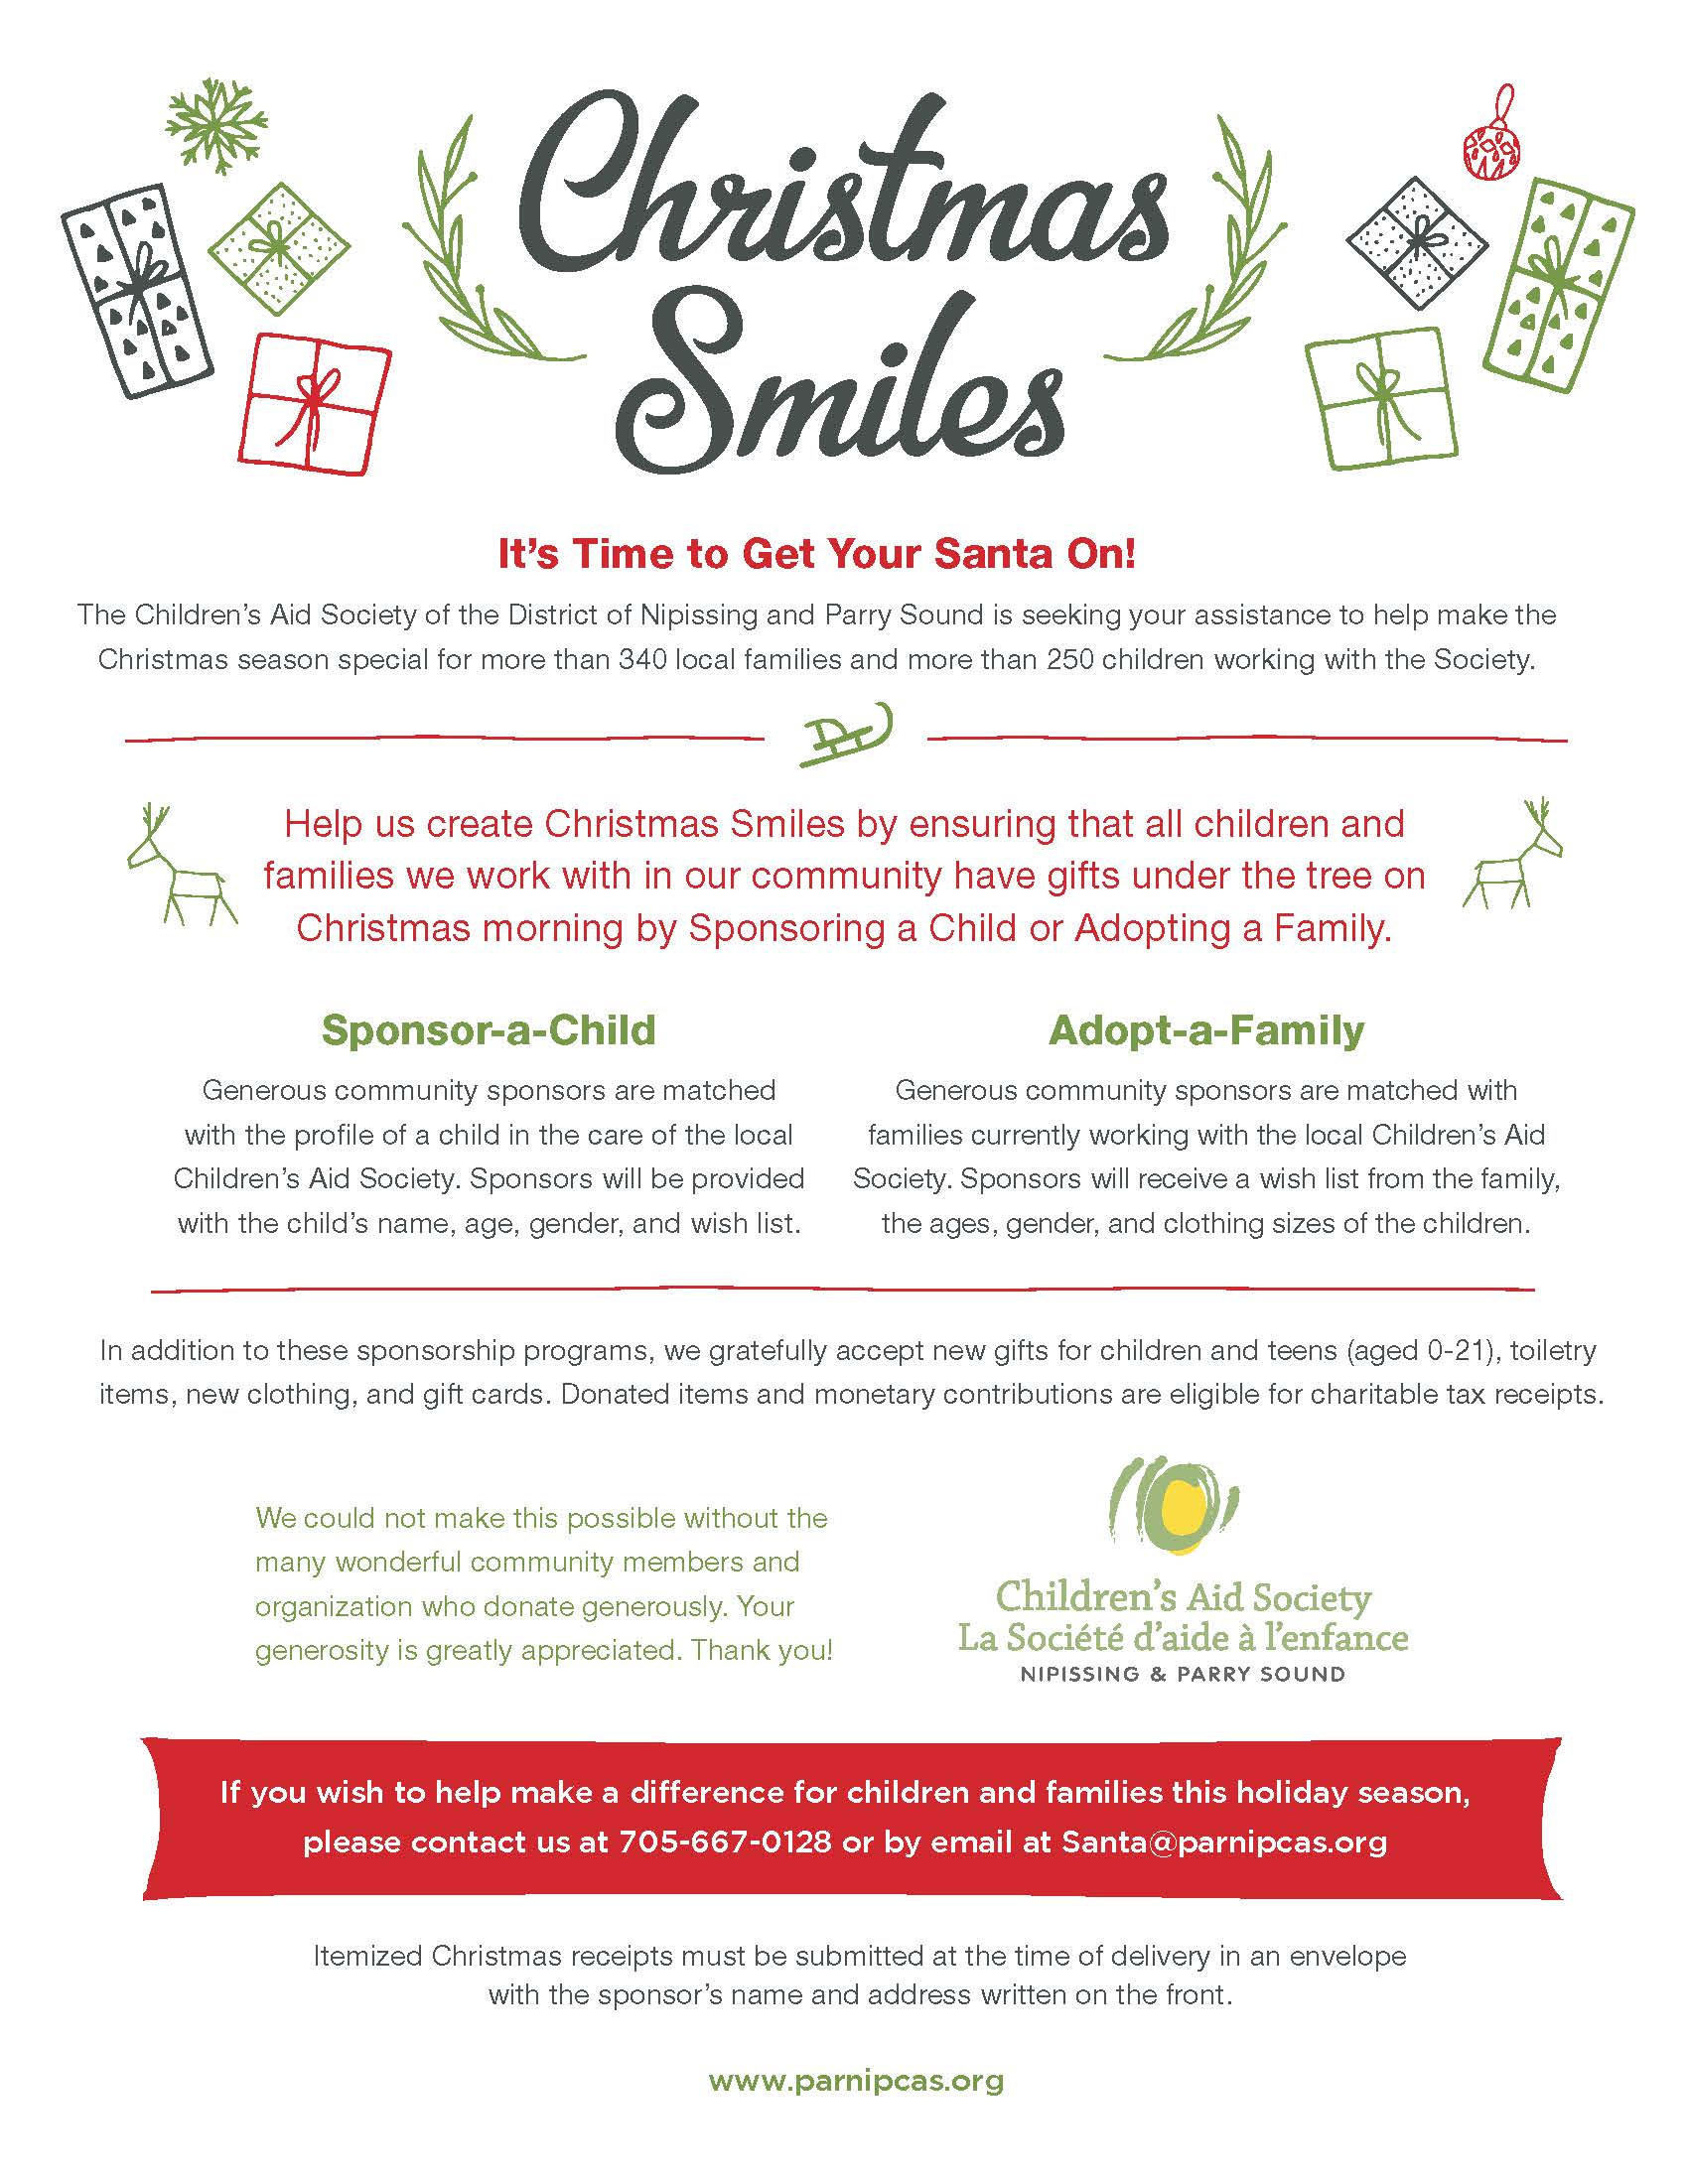 Example of the Christmas Smiles Flyer 2019 in ENGLISH